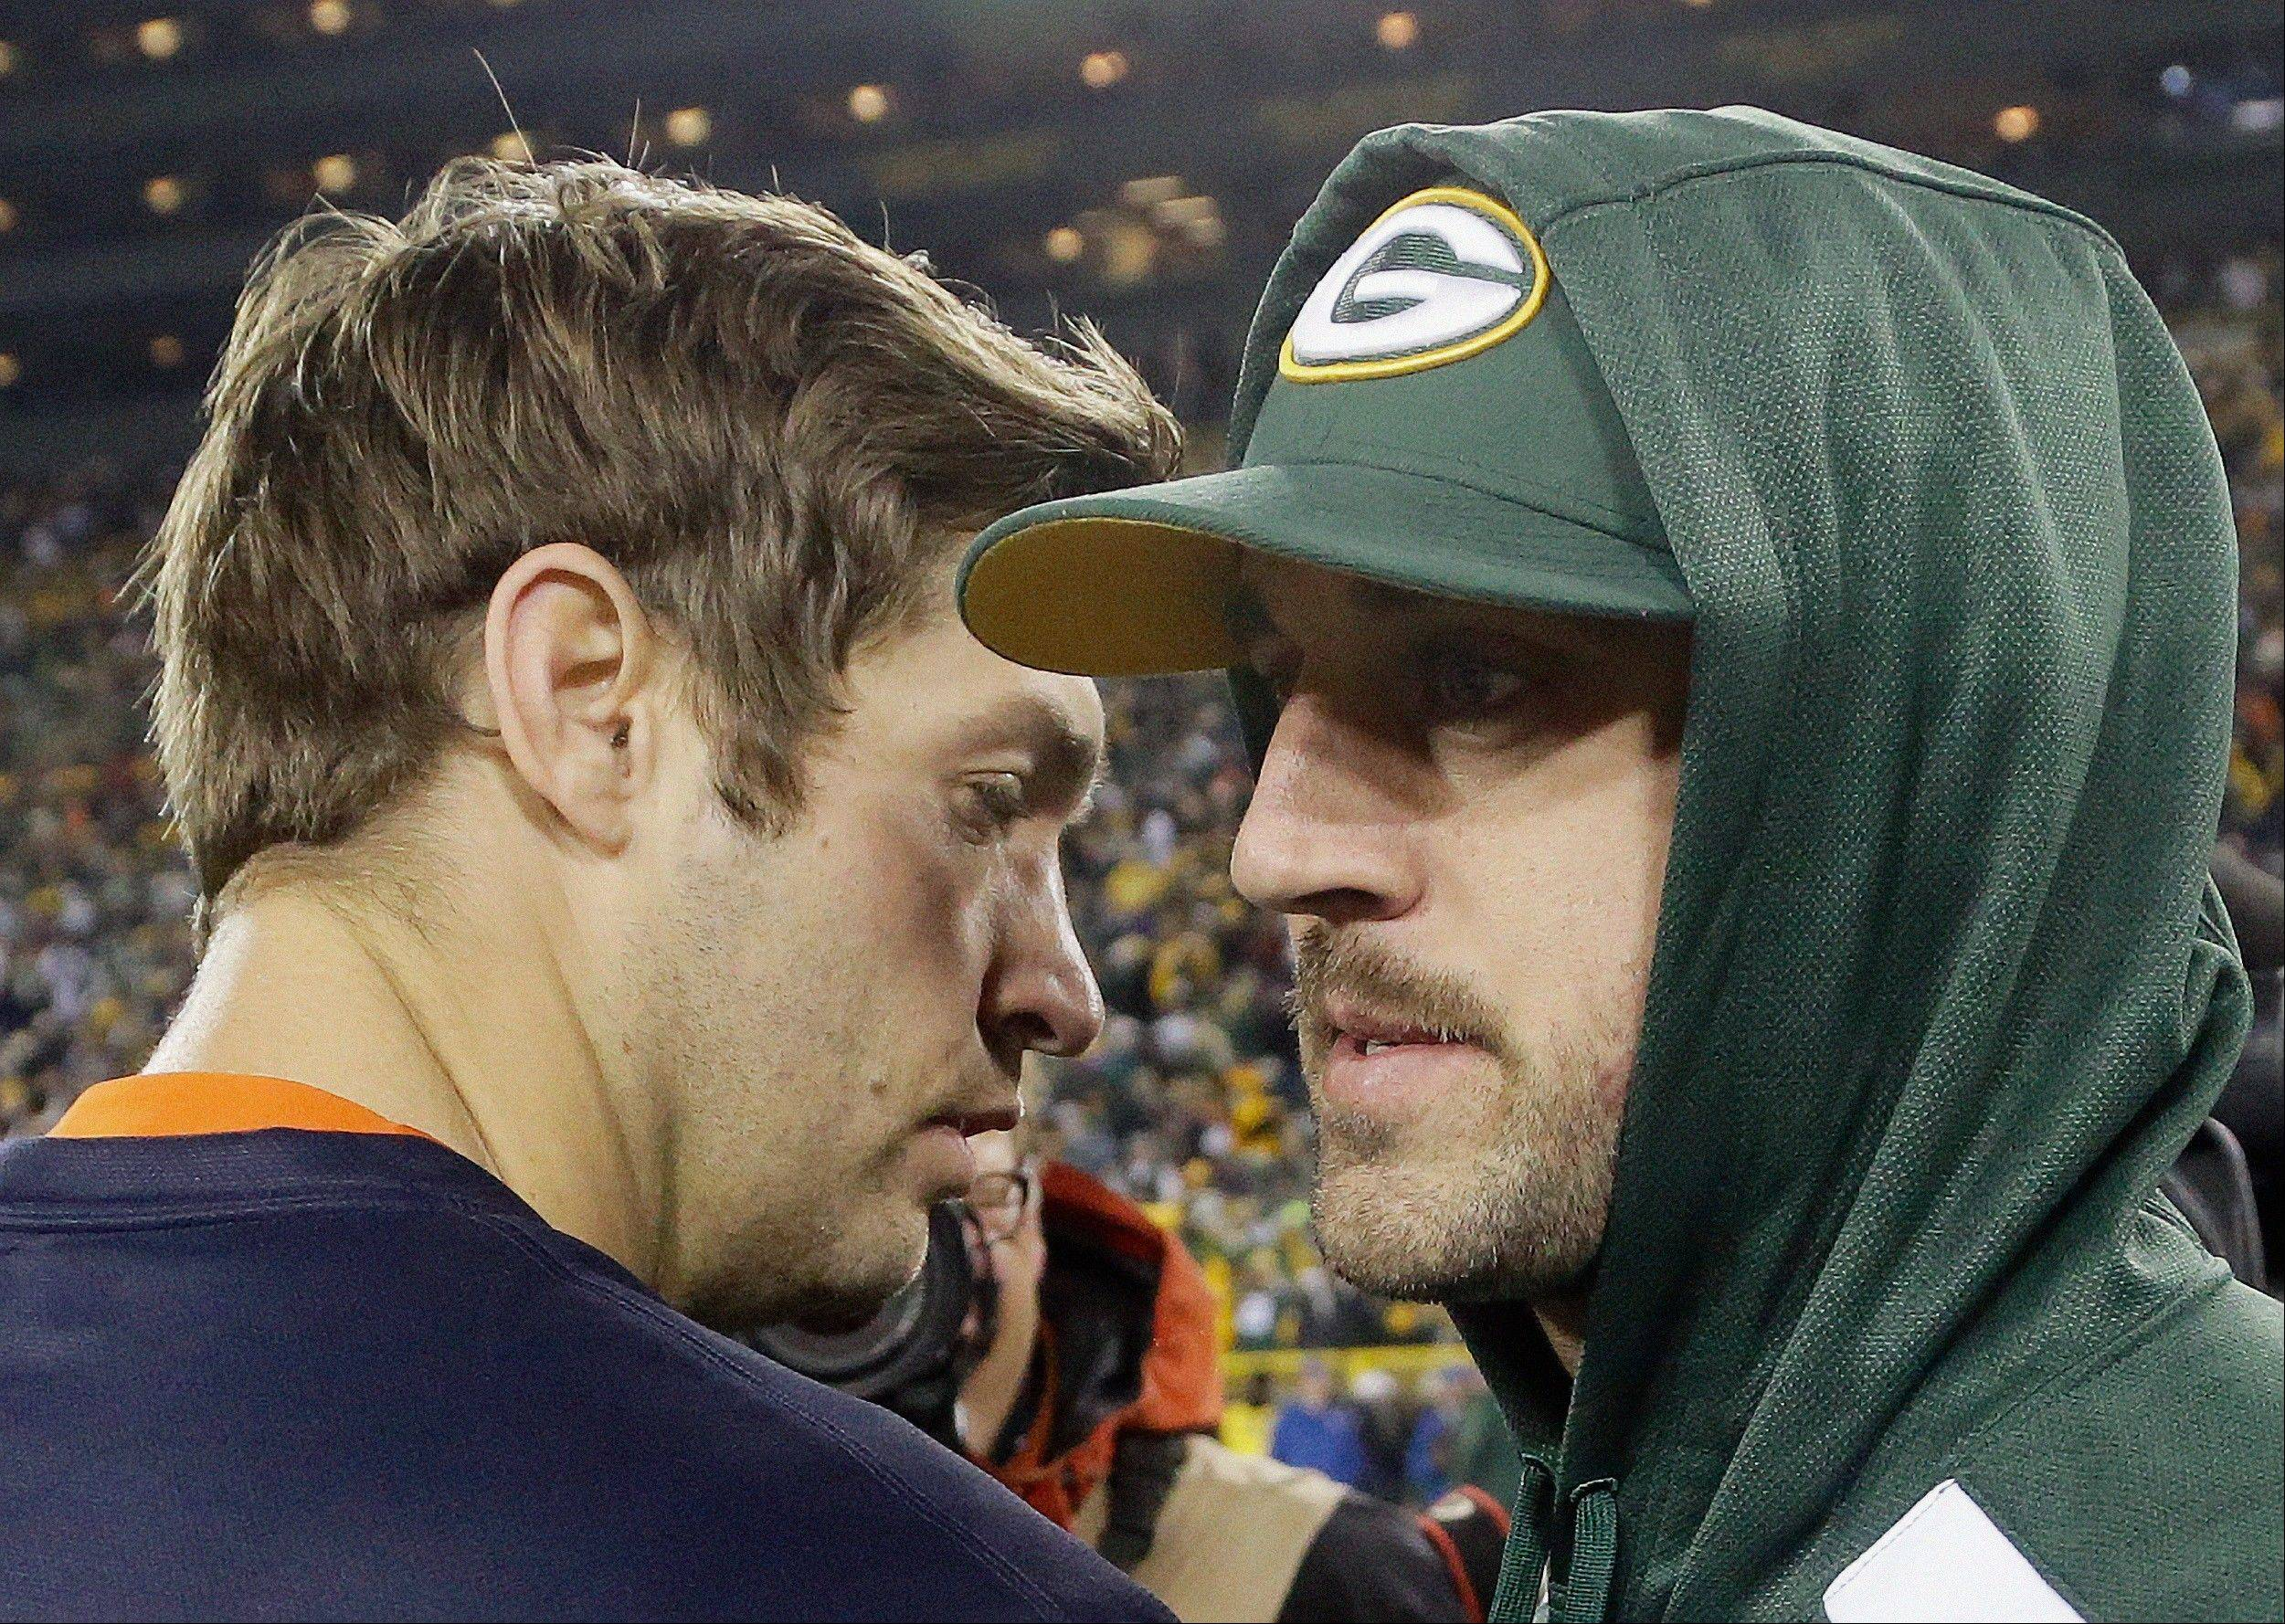 Green Bay Packers quarterback Aaron Rodgers, right, talks to the Bears' Jay Cutler after Monday's game at Lambeau Field. Both watched the game from the sidelines -- Rodgers suffered an injury in the first half.